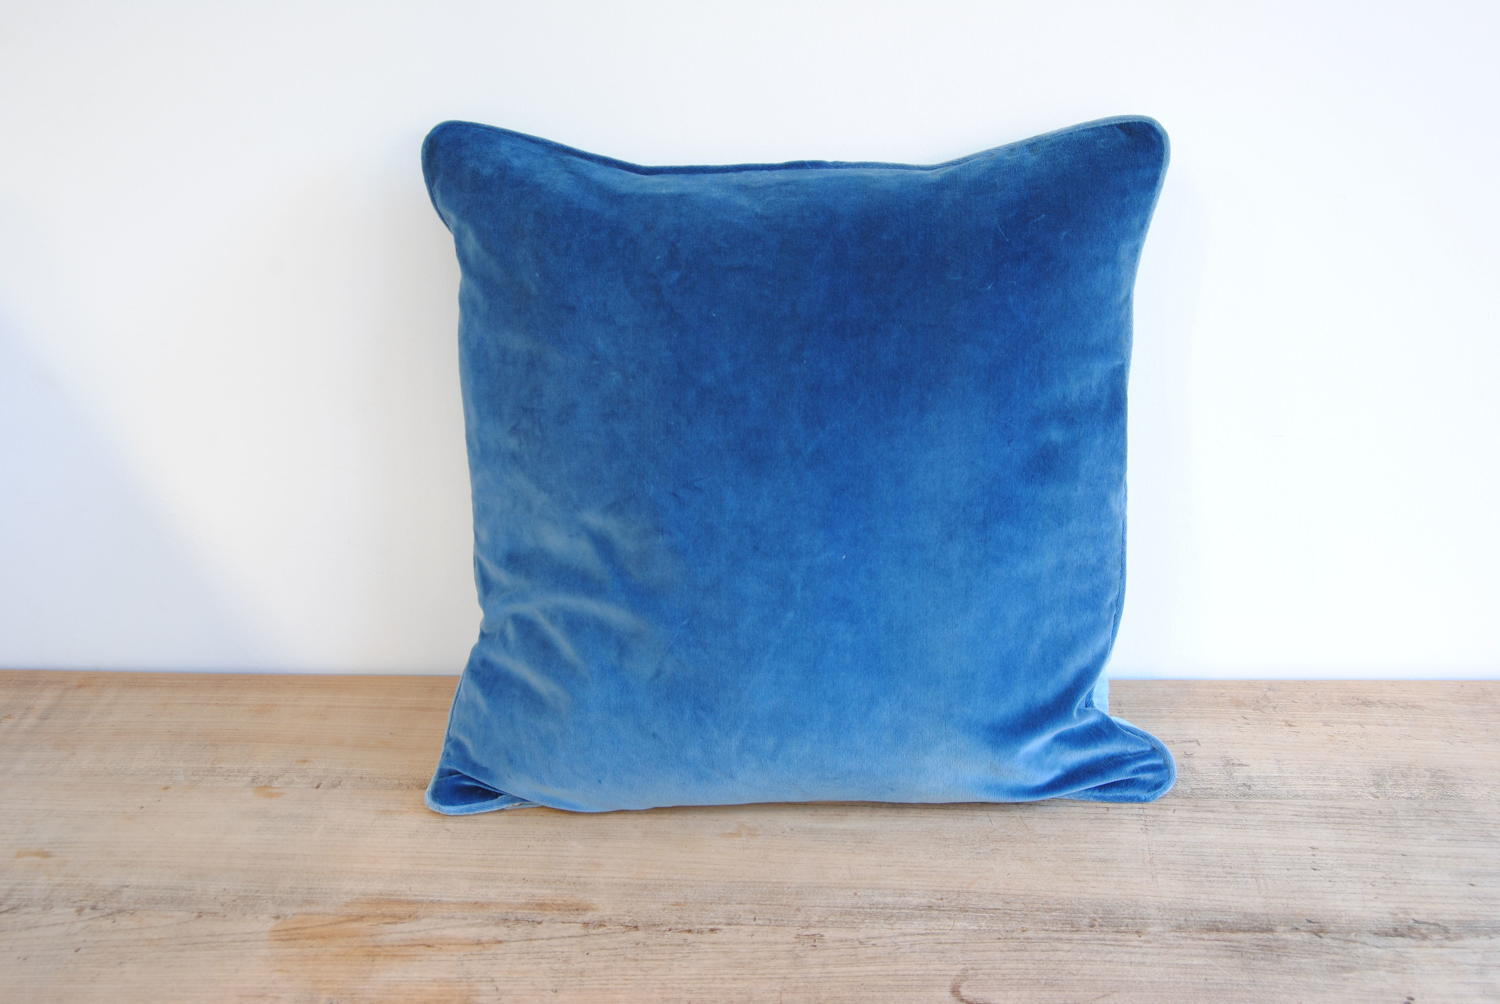 Cushions in vintage blue velvet